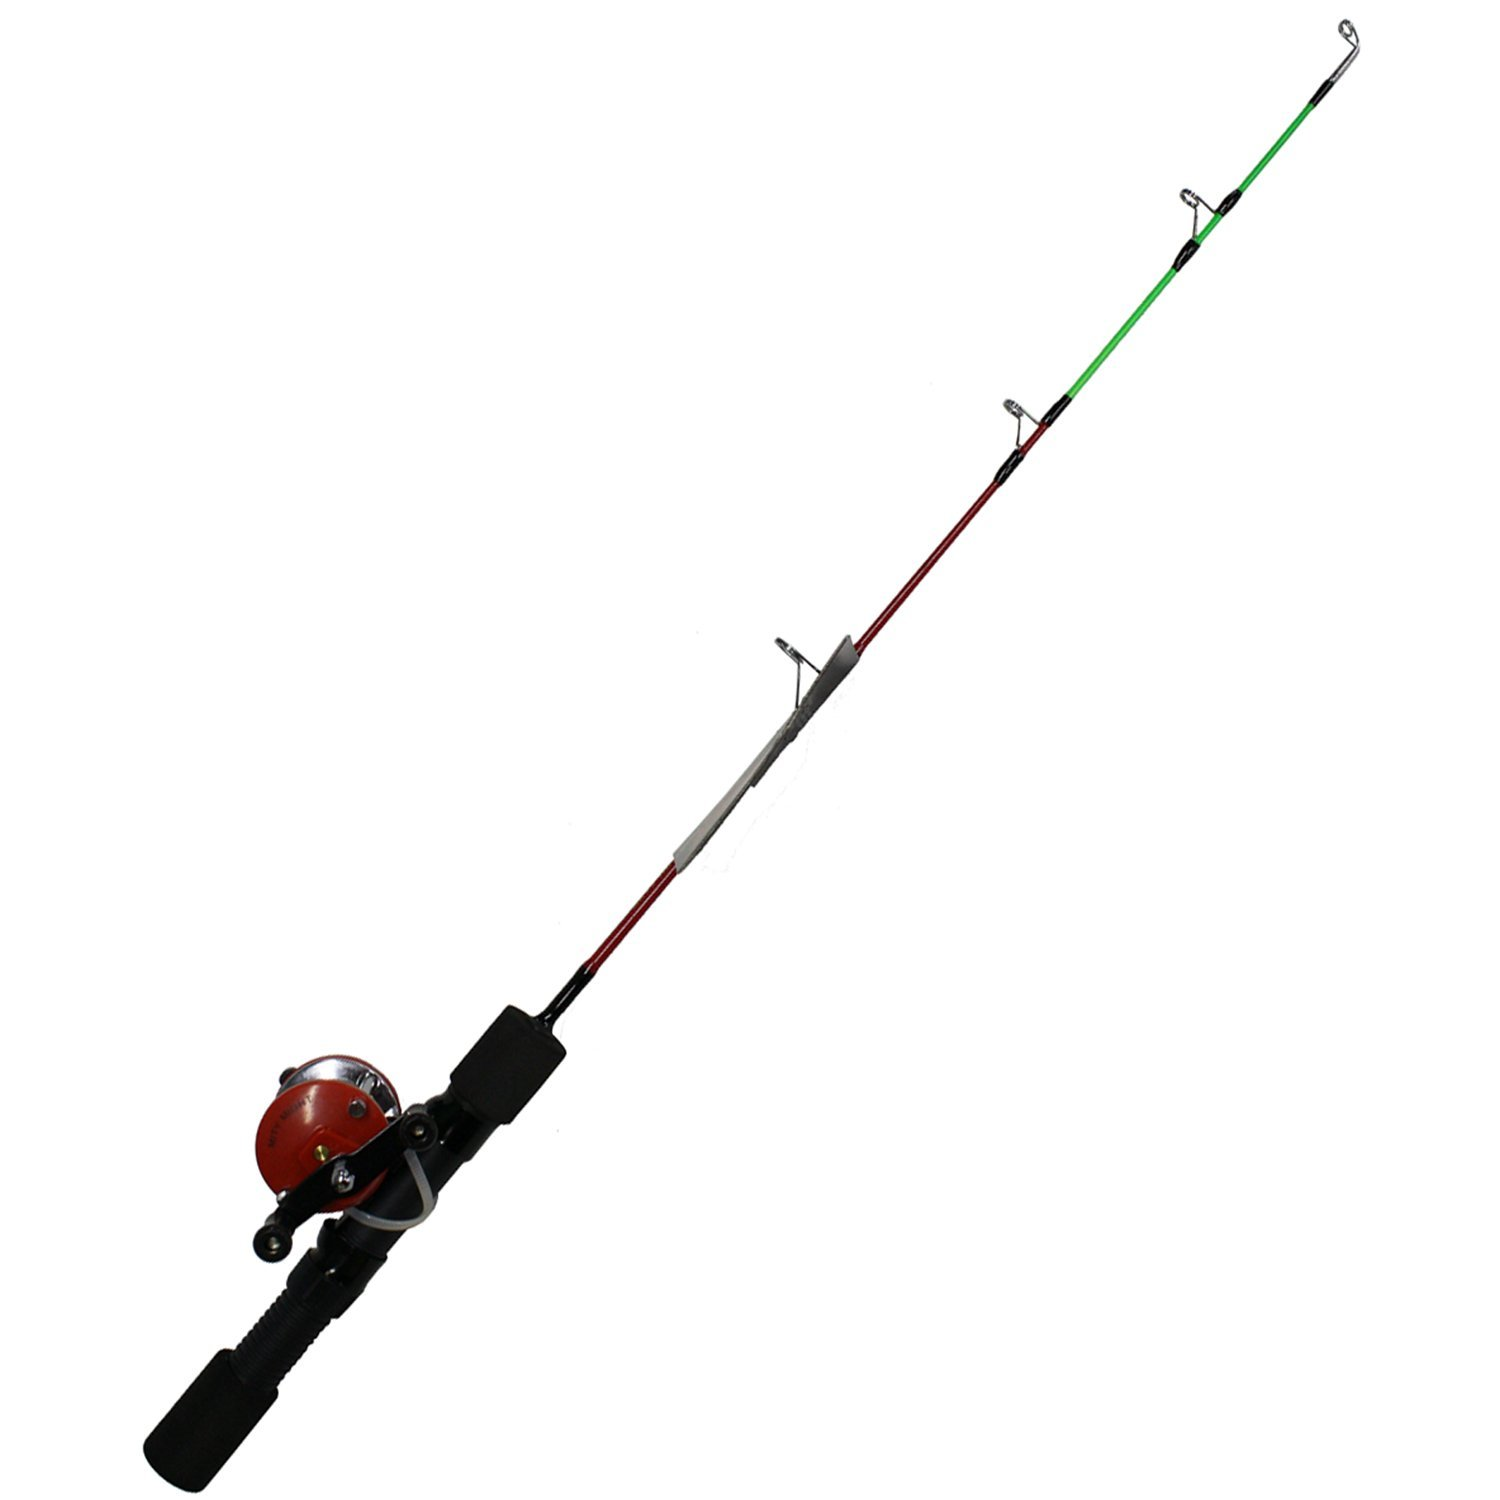 Fishing rod pole clipart clipart suggest for How to make fishing rod